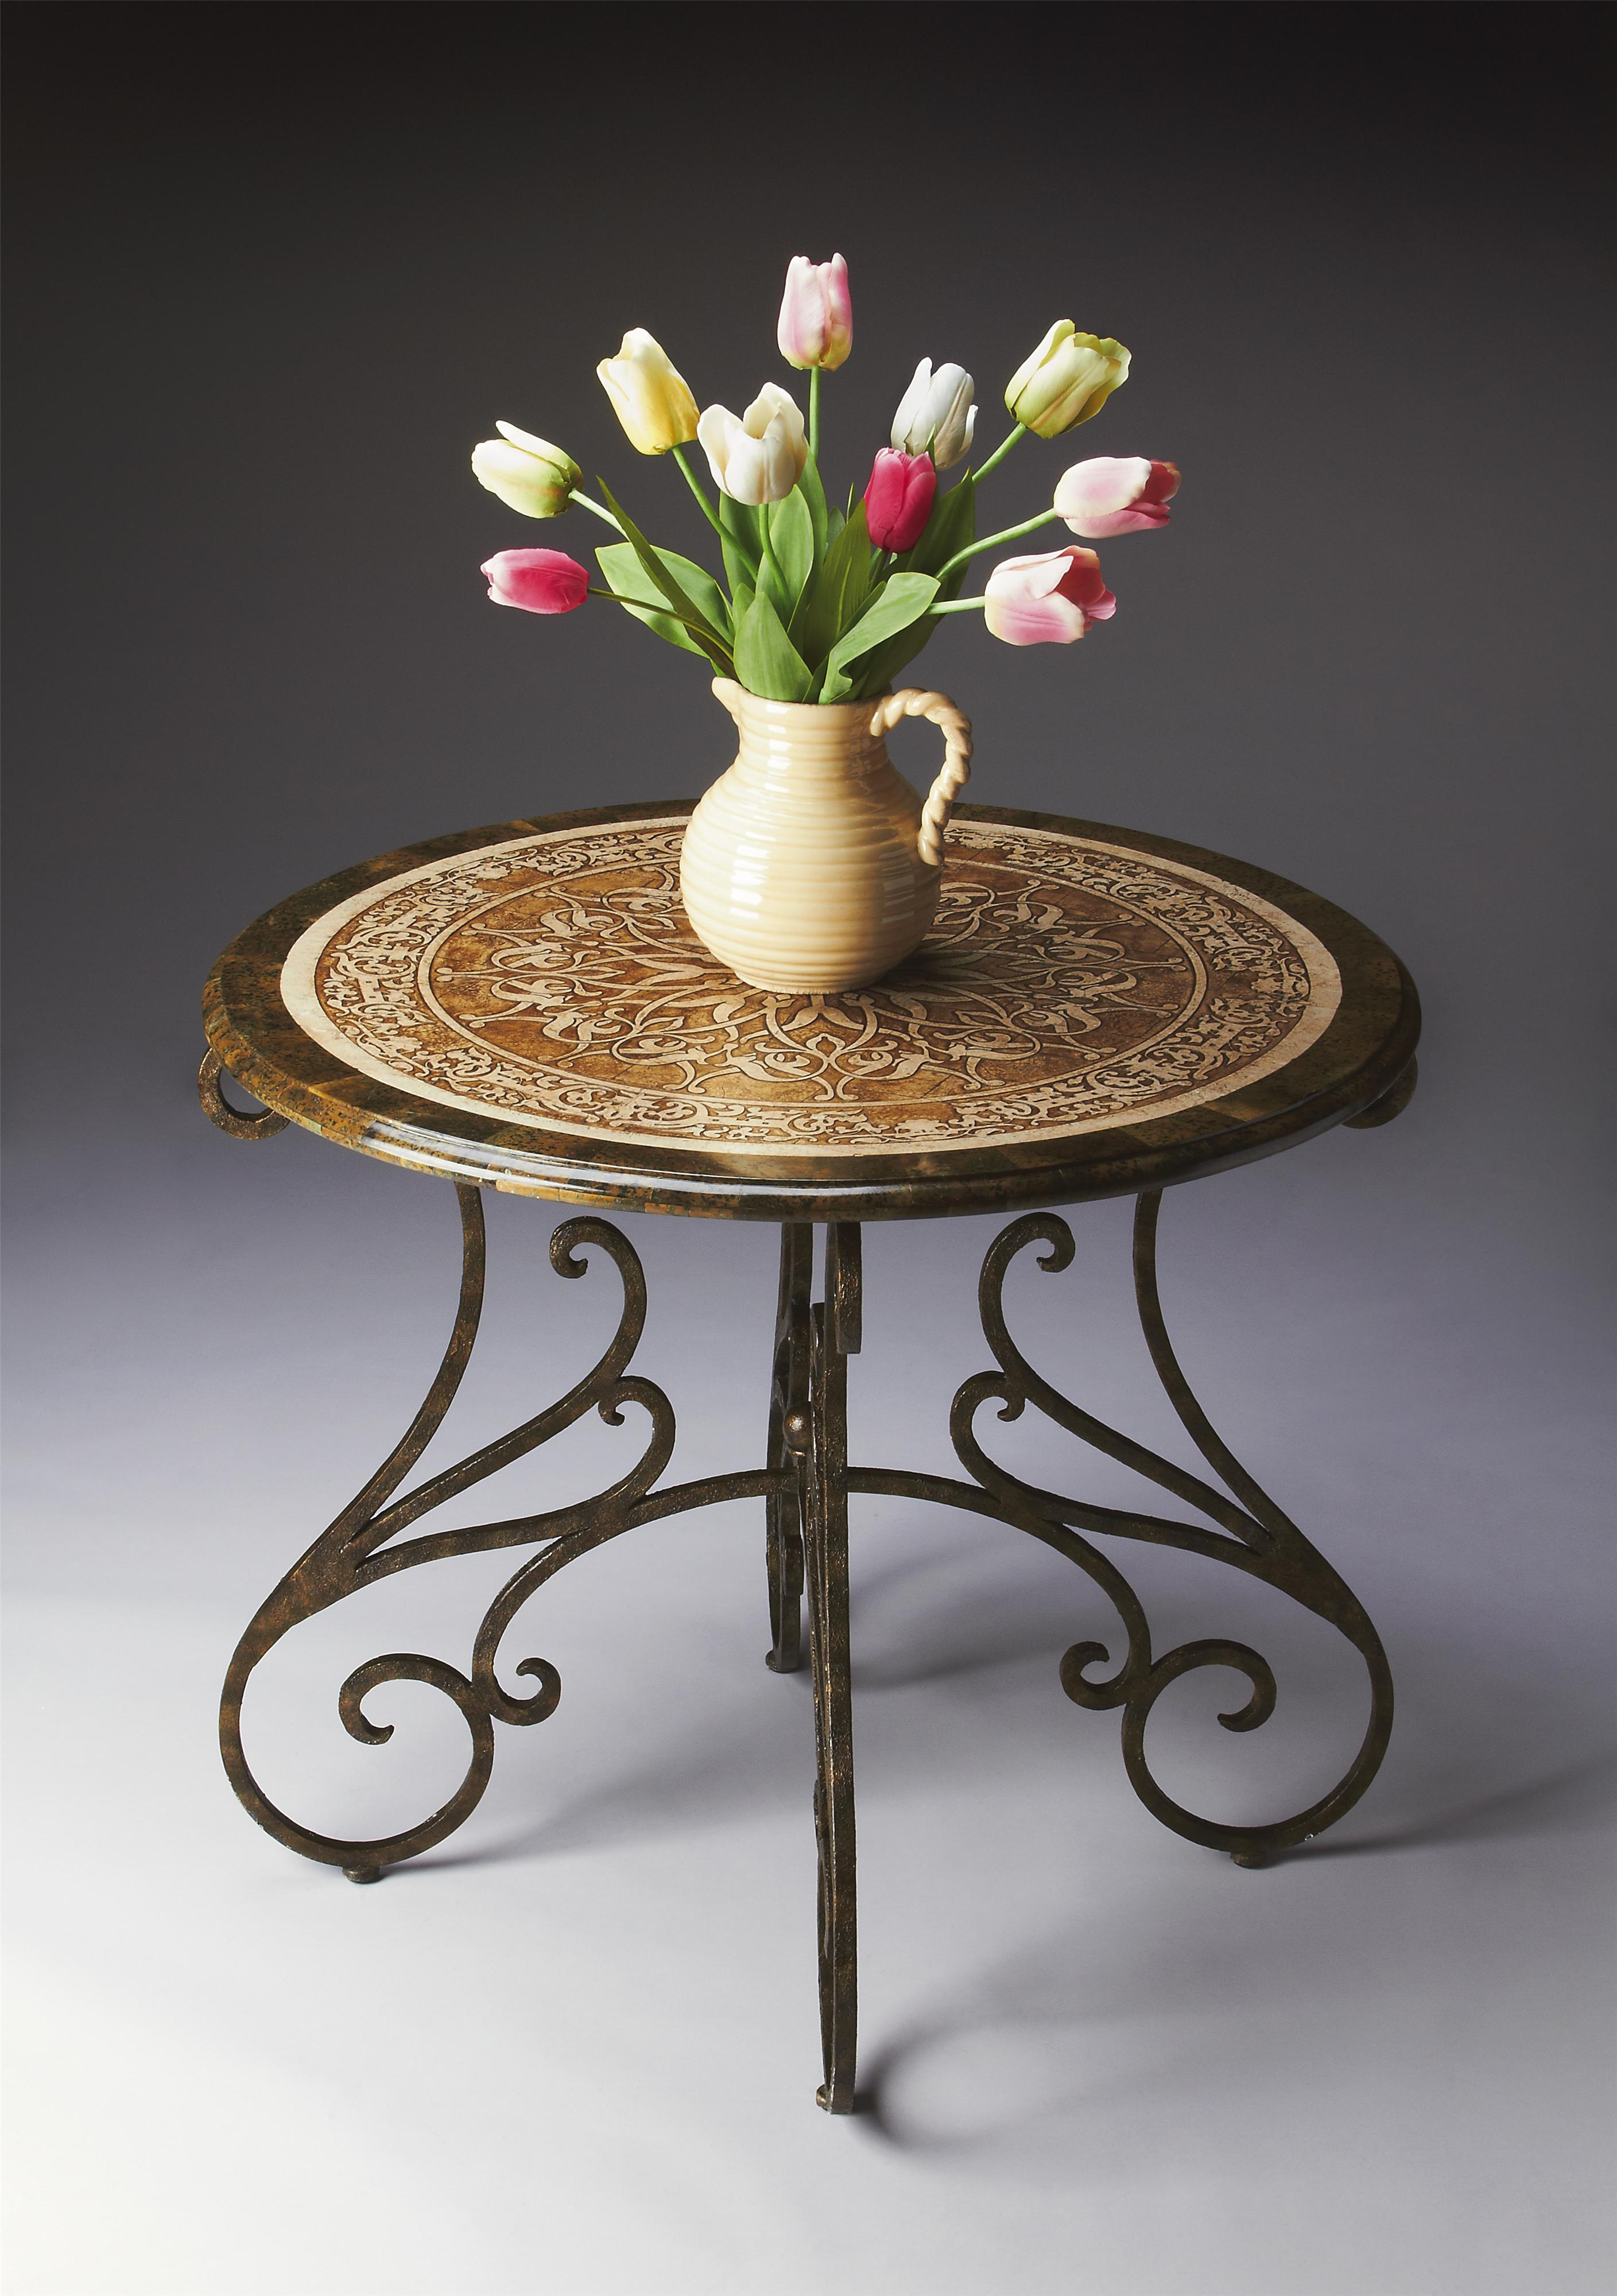 Butler Specialty Company Metalworks Foyer Table - Item Number: 2171025